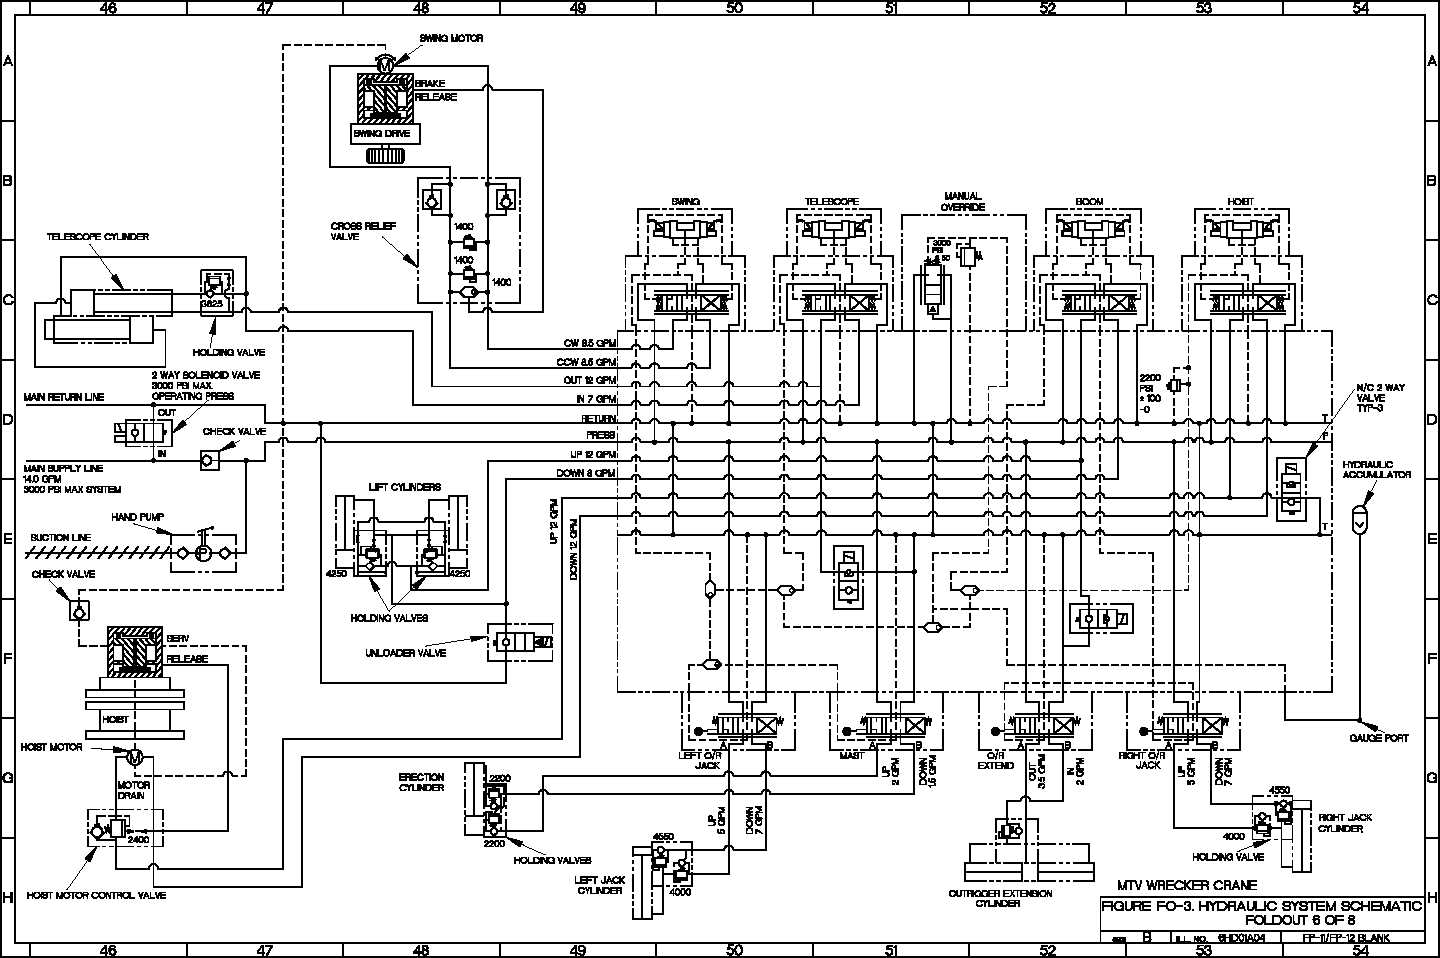 Industrial Ford 460 Wiring Diagram Diagrams Engine Exploded Free 1984 Schematic Parts